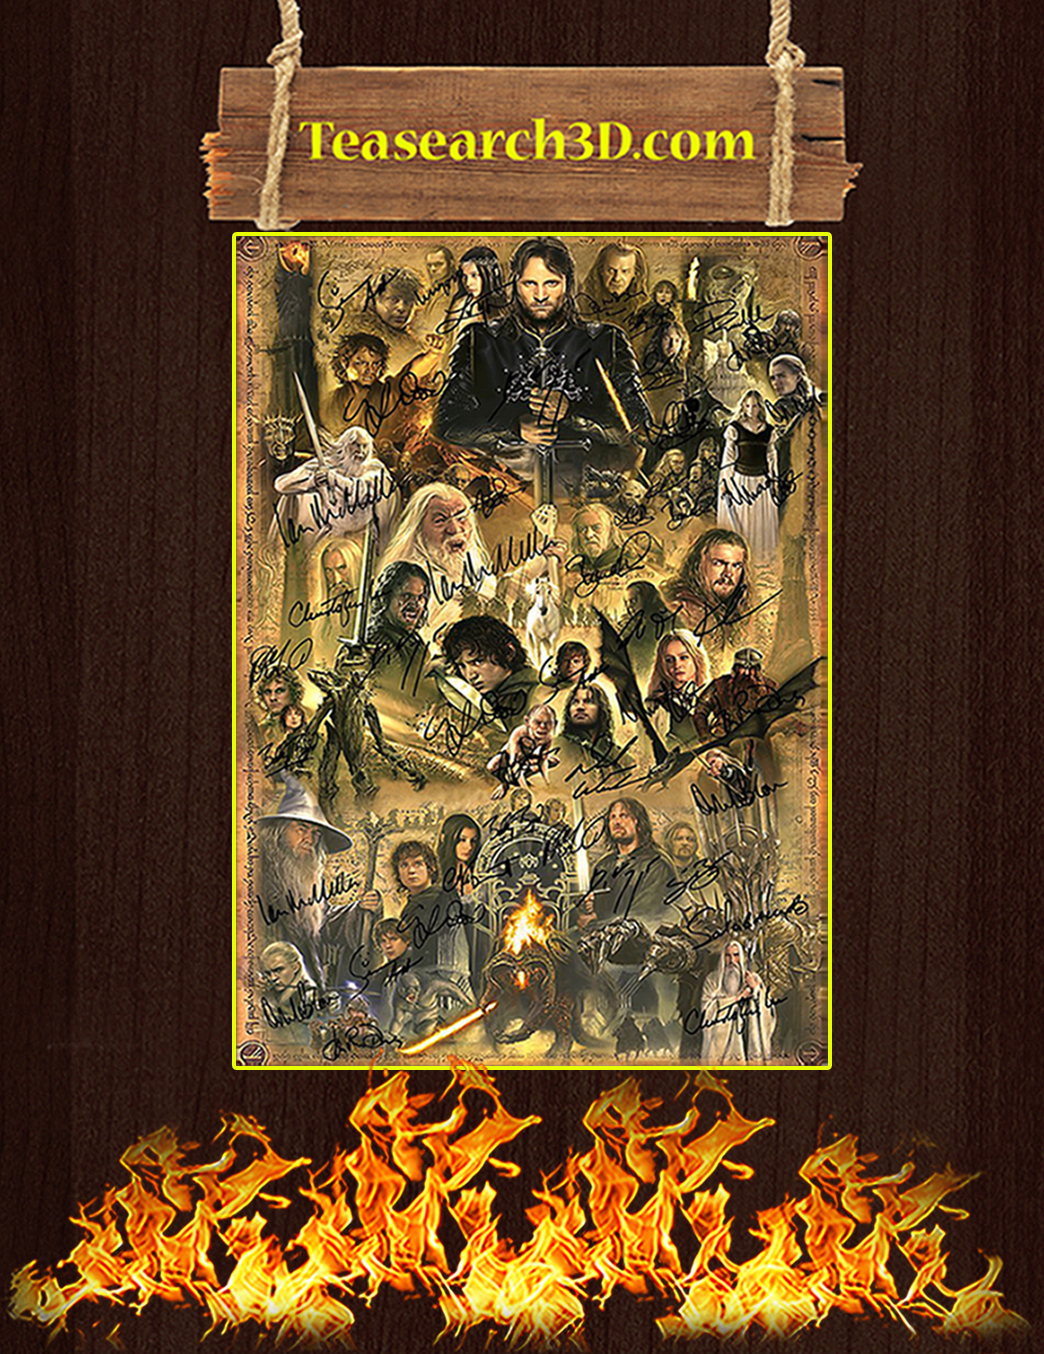 The lord of the rings signature poster A1